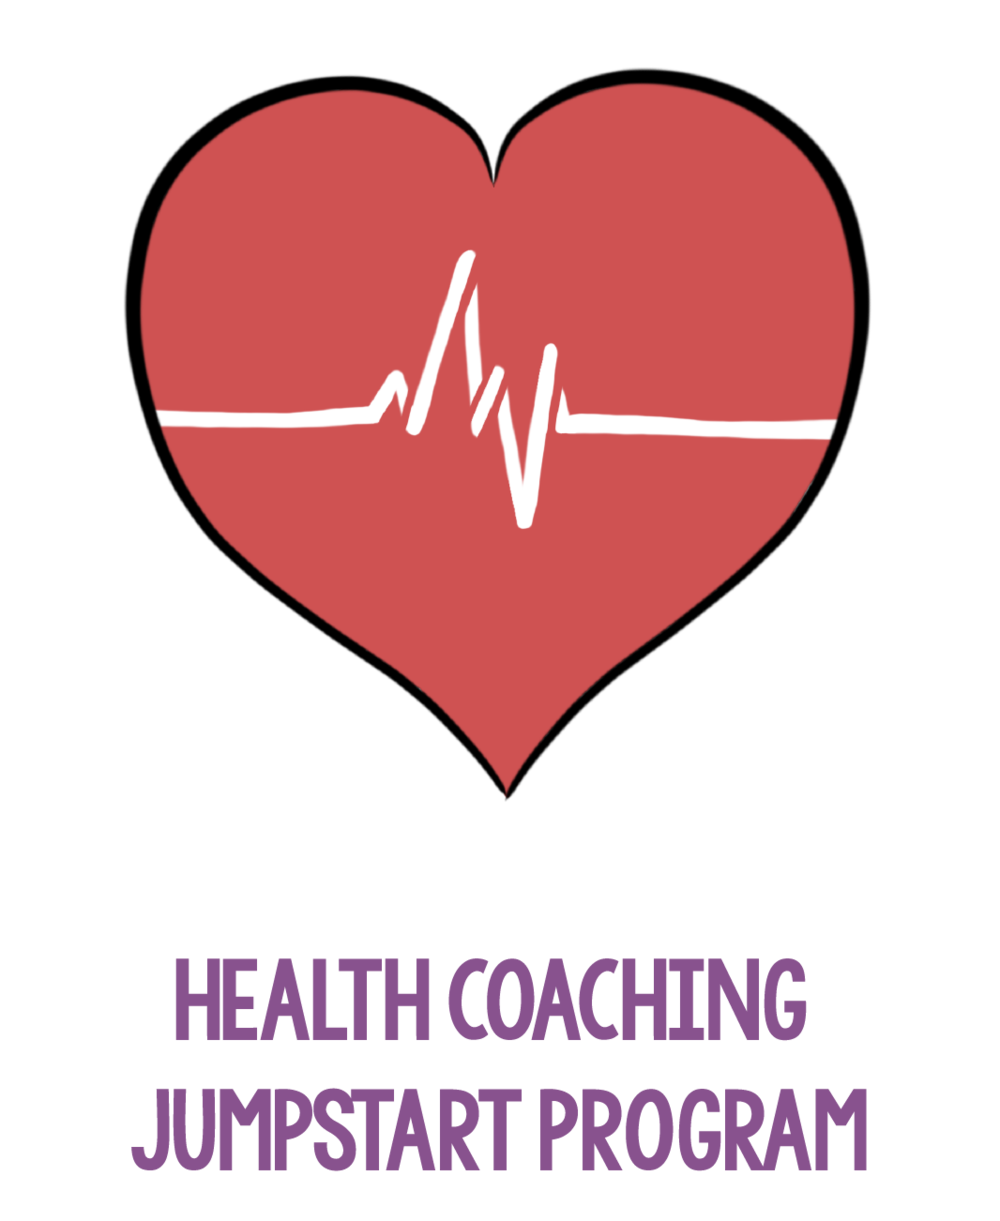 HEALTH COACHING JUMPSTART PROGRAM FOR REAL HEALTHY HABITS